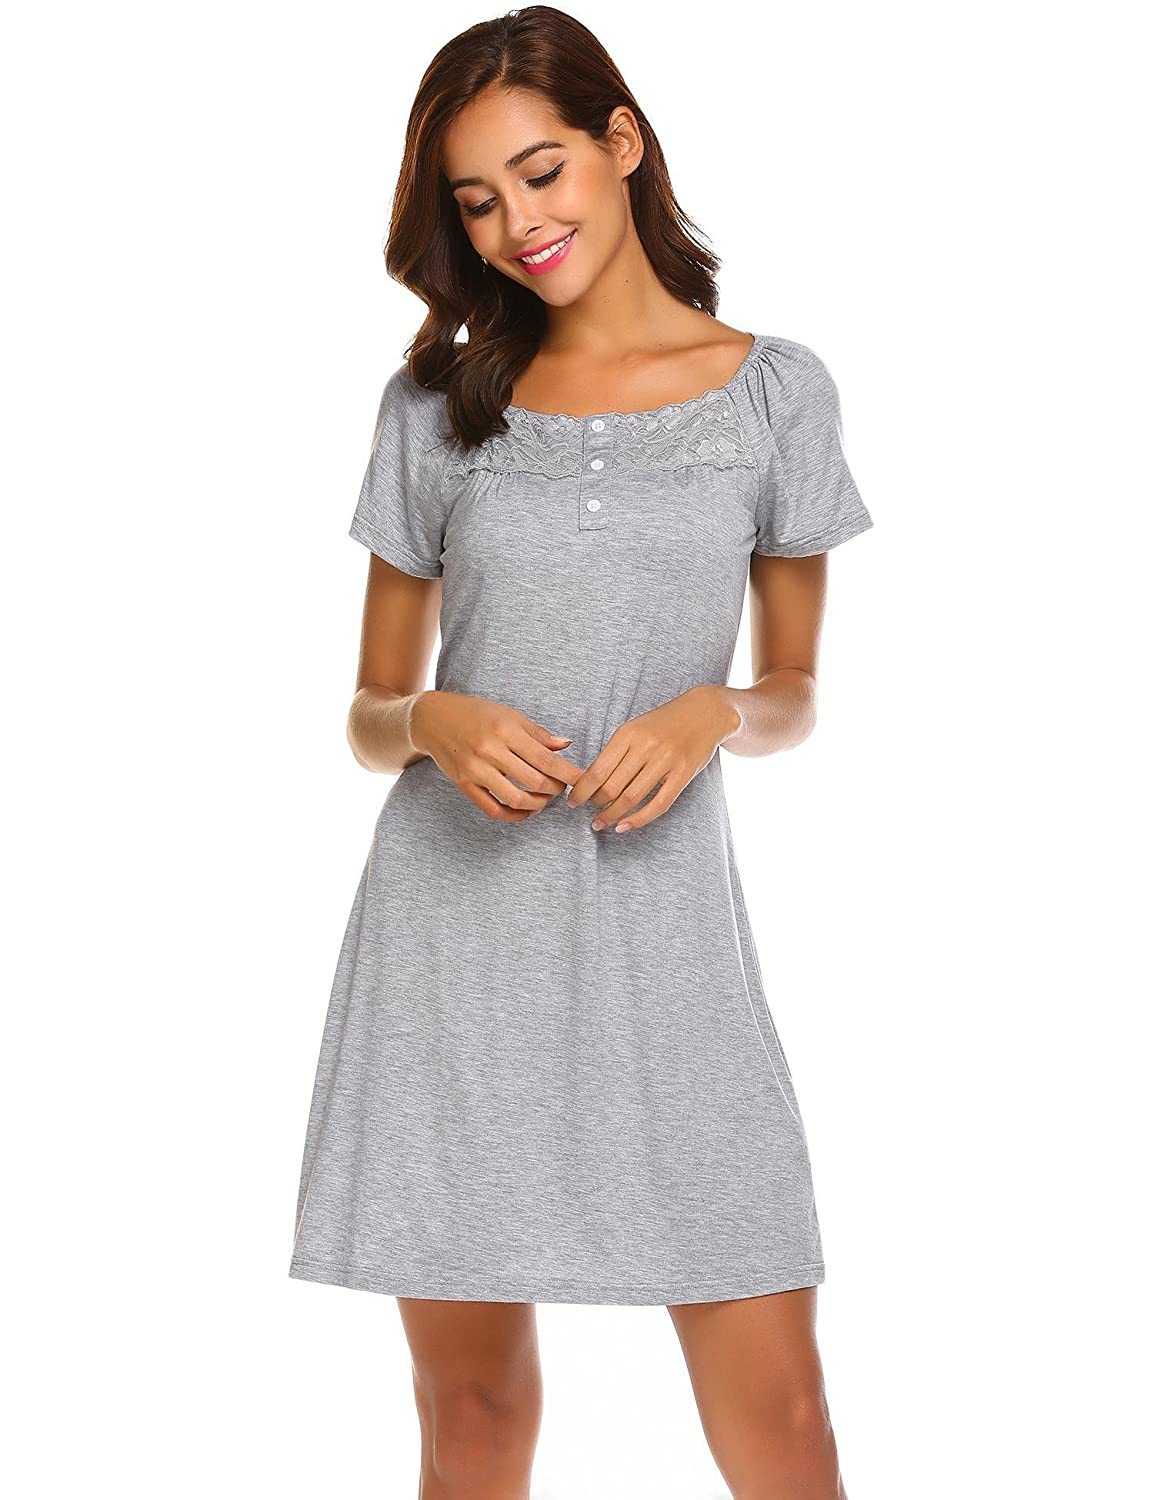 0d5cd00059 Keelied Women Ladies Summer Nightdress Short Sleeved Nighties Short  Nightshirt Loungewear Stretch Dress with Lace and Buttons Black Blue Grey   Amazon.co.uk  ...